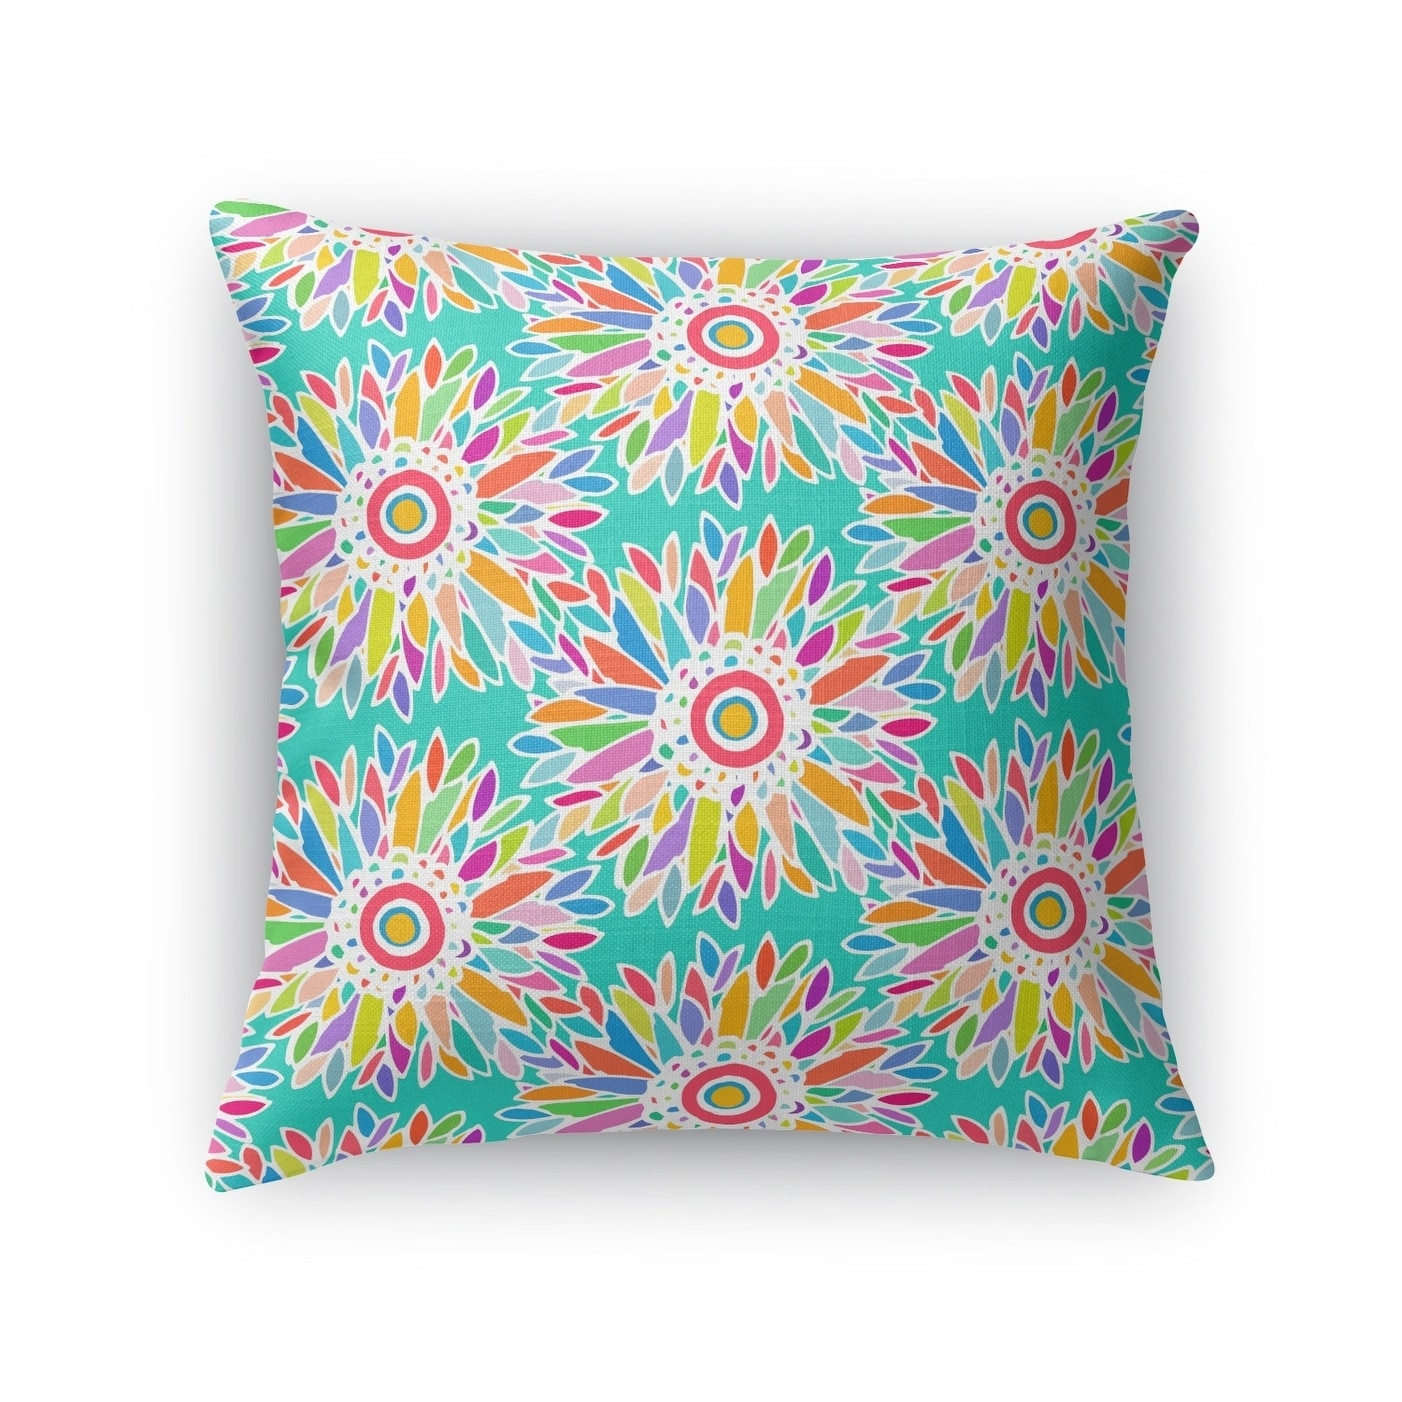 FUN FLORAL TEAL Accent Pillow By Becca Garrison - Free Shipping ...